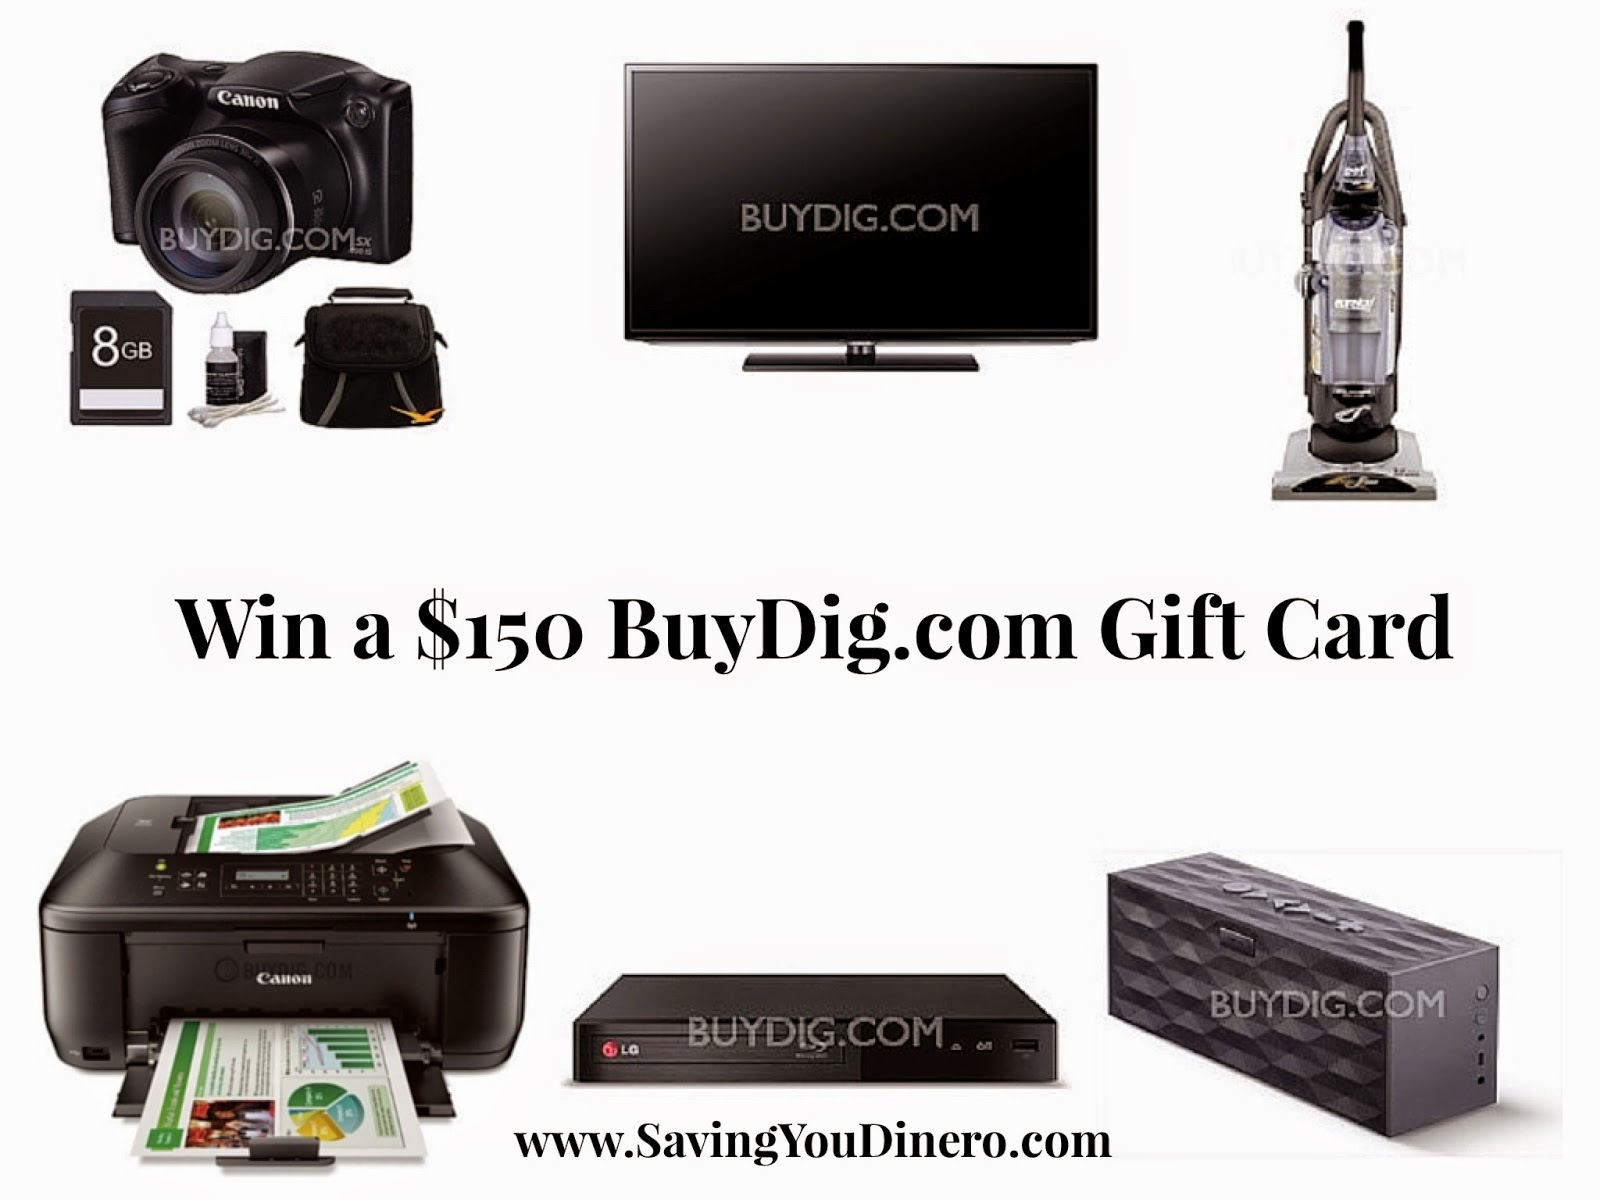 Enter the BuyDig.com Gift Card Giveaway. Ends 2/16